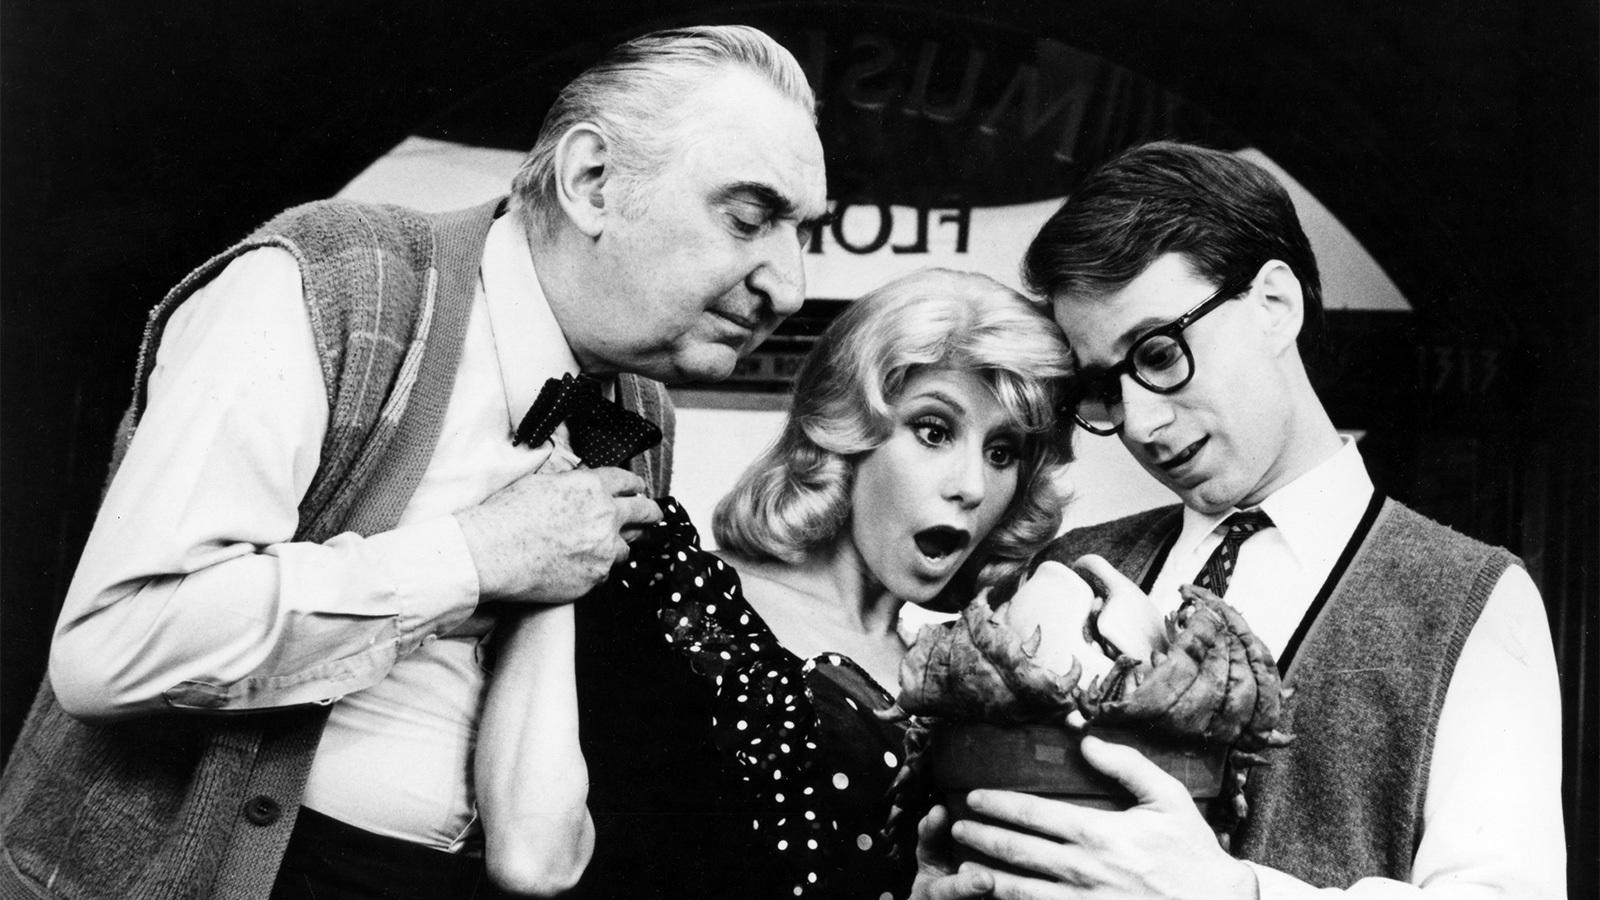 a 1 25 Things You Never Knew About Little Shop of Horrors